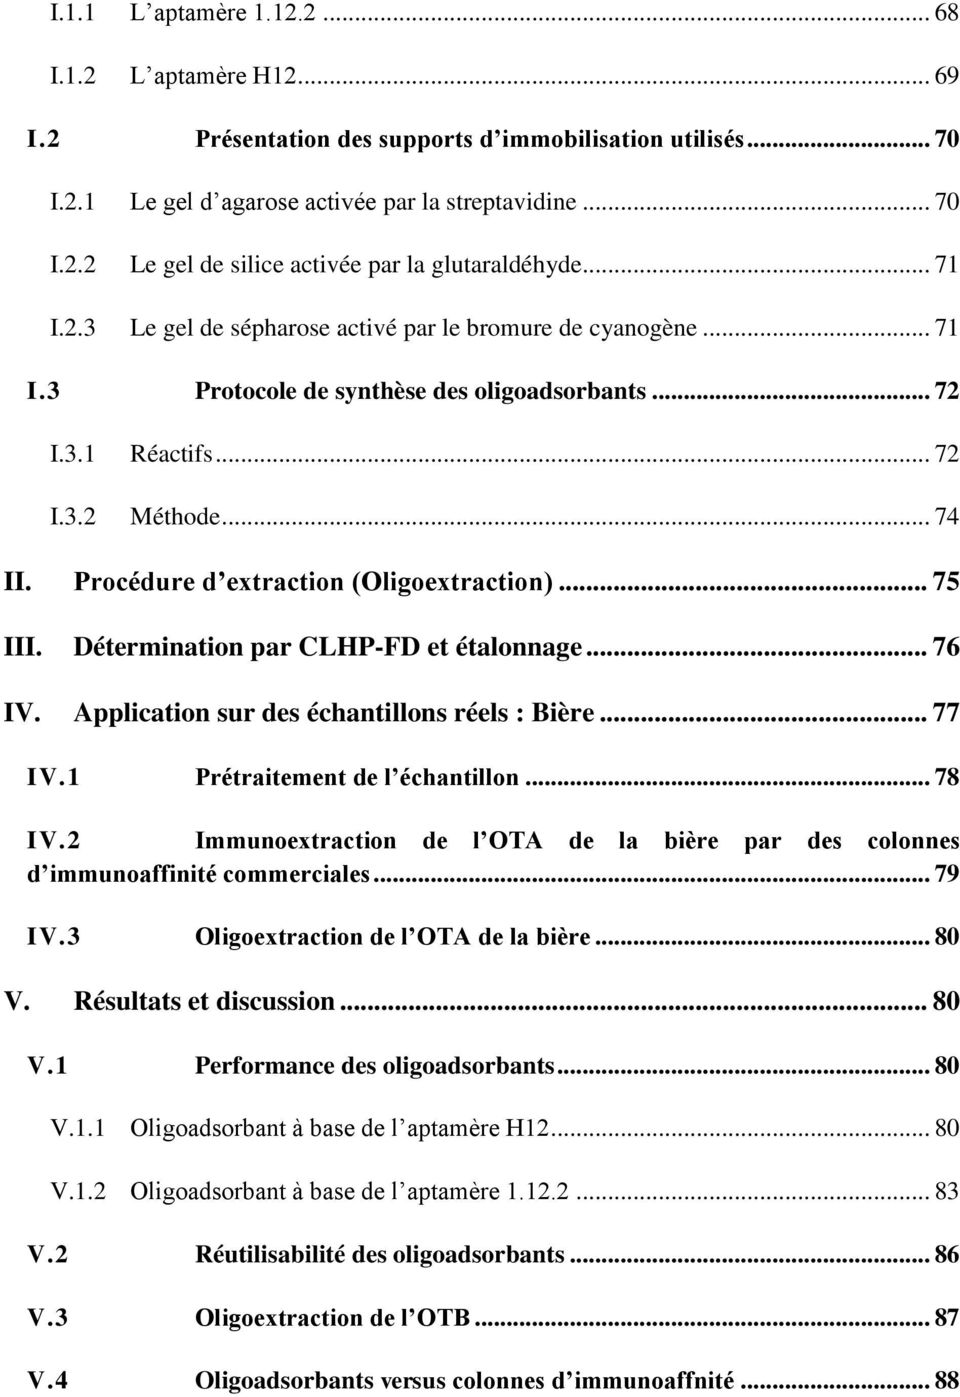 Procédure d extraction (Oligoextraction)... 75 III. Détermination par CLHP-FD et étalonnage... 76 IV. Application sur des échantillons réels : Bière... 77 IV.1 Prétraitement de l échantillon... 78 IV.